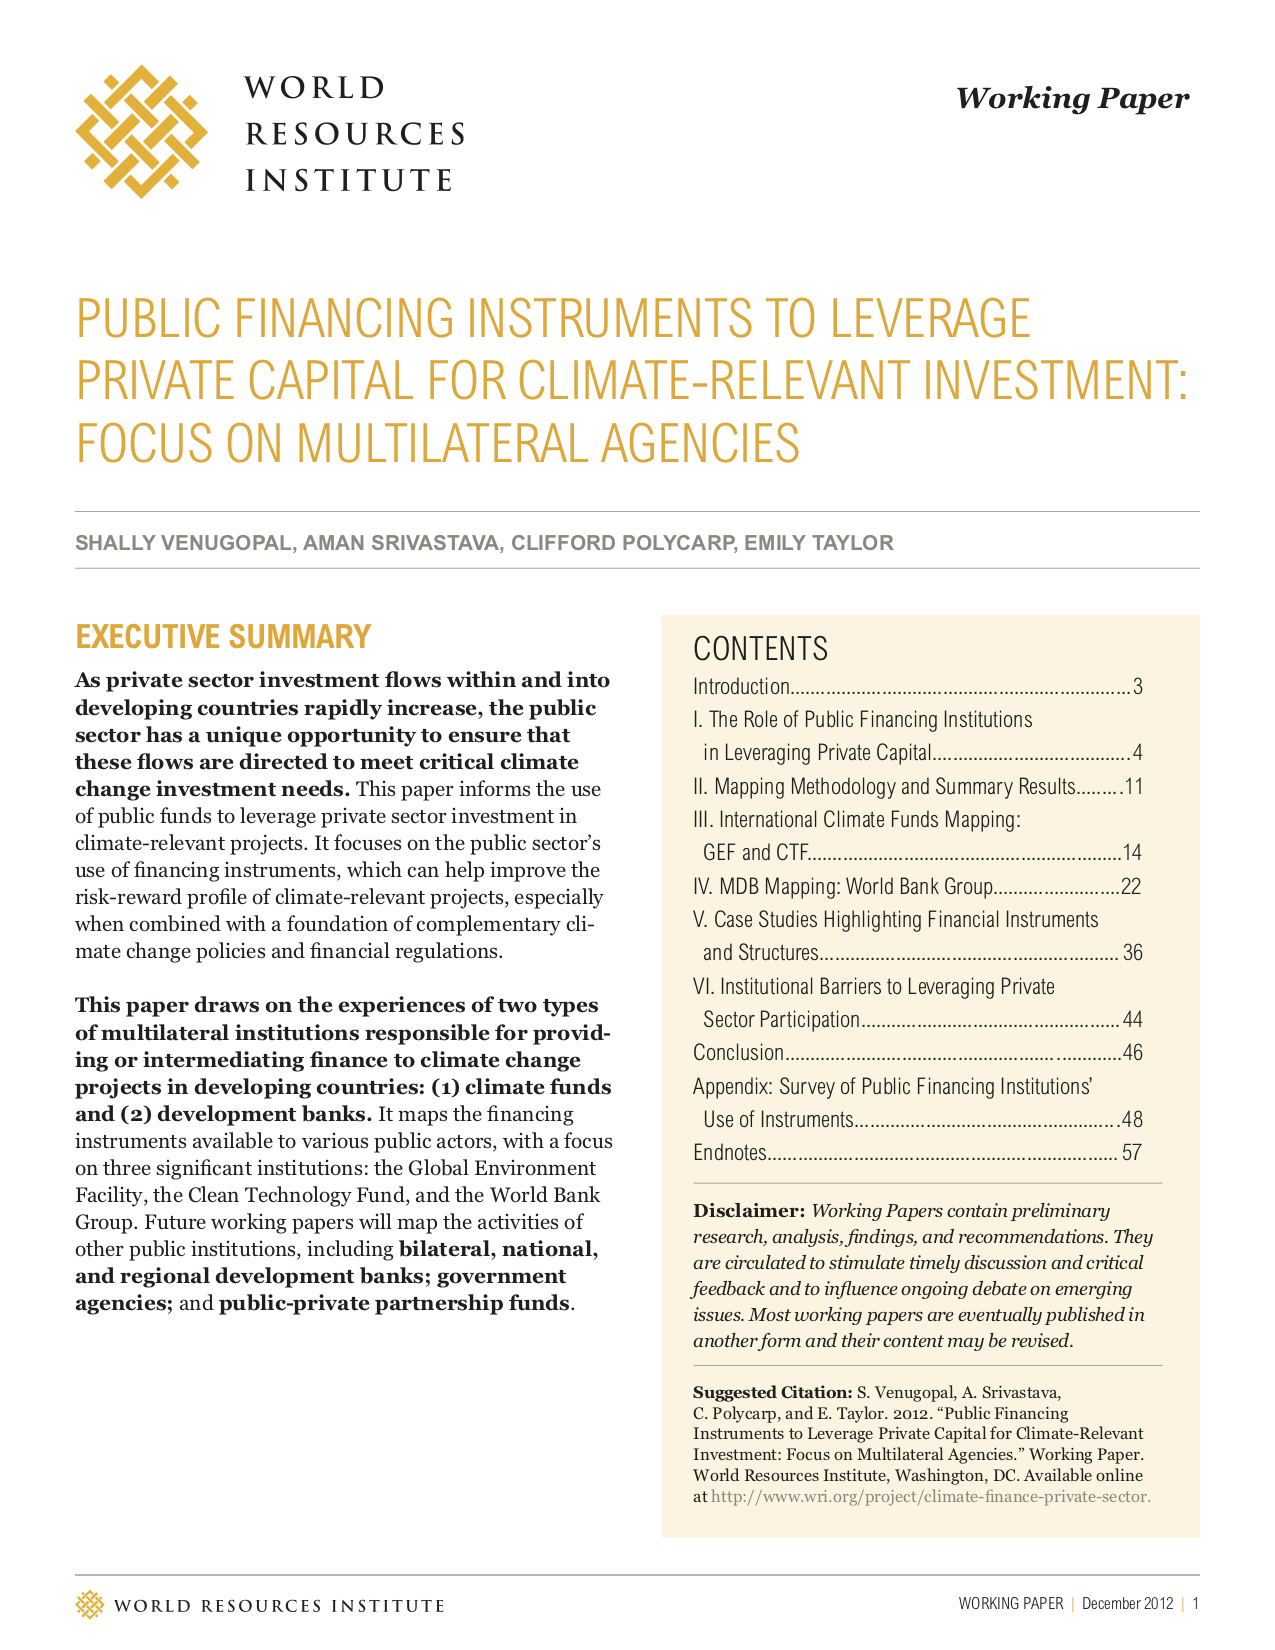 Public Financing Instruments to Leverage Private Capital for Climate-Relevant Investment: Focus on Multilateral Agencies